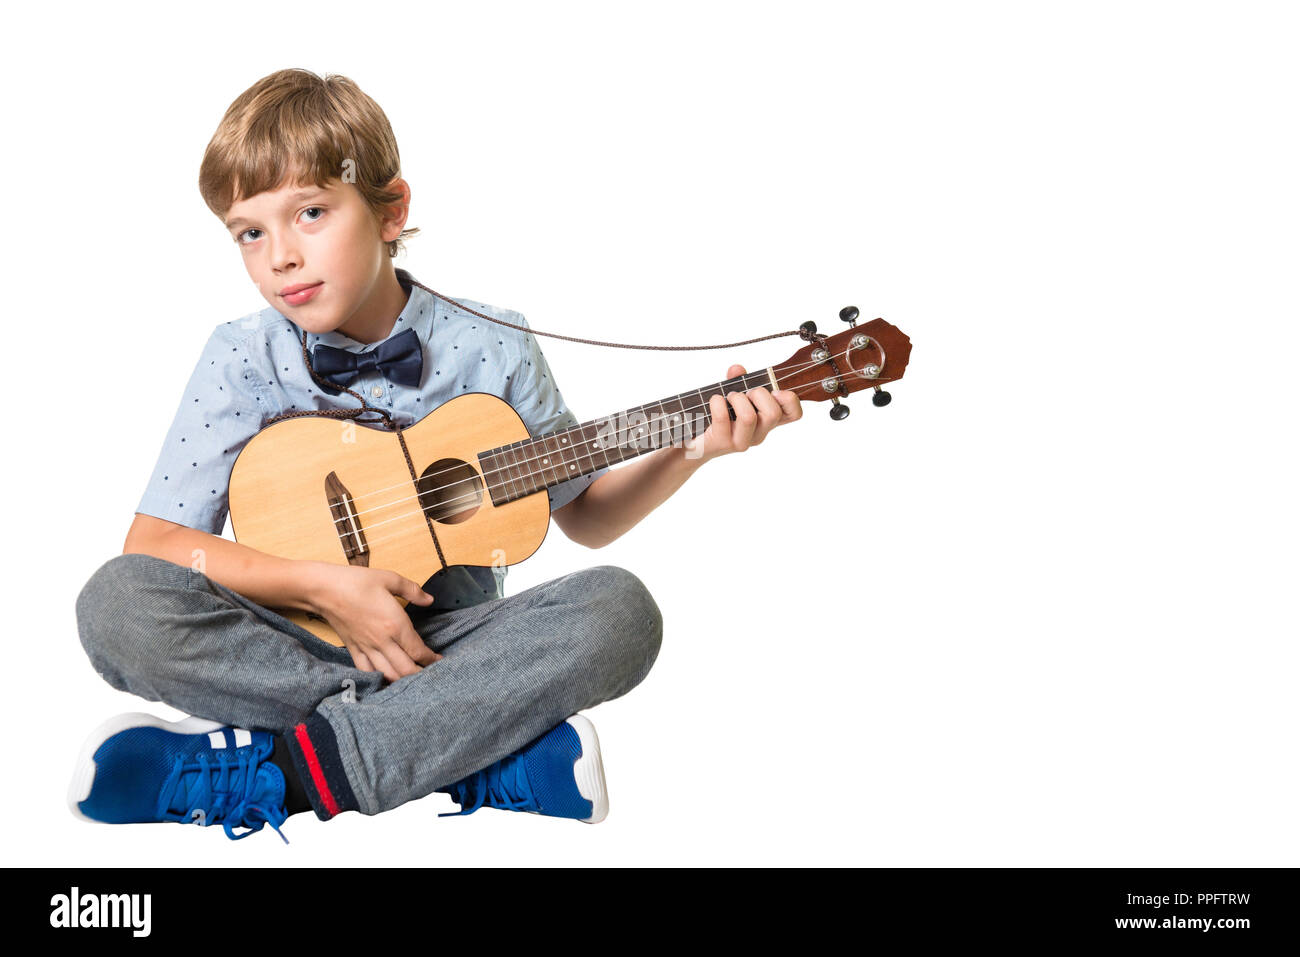 young adorable boy playing the ukulele, isolated on white background with space for text Stock Photo